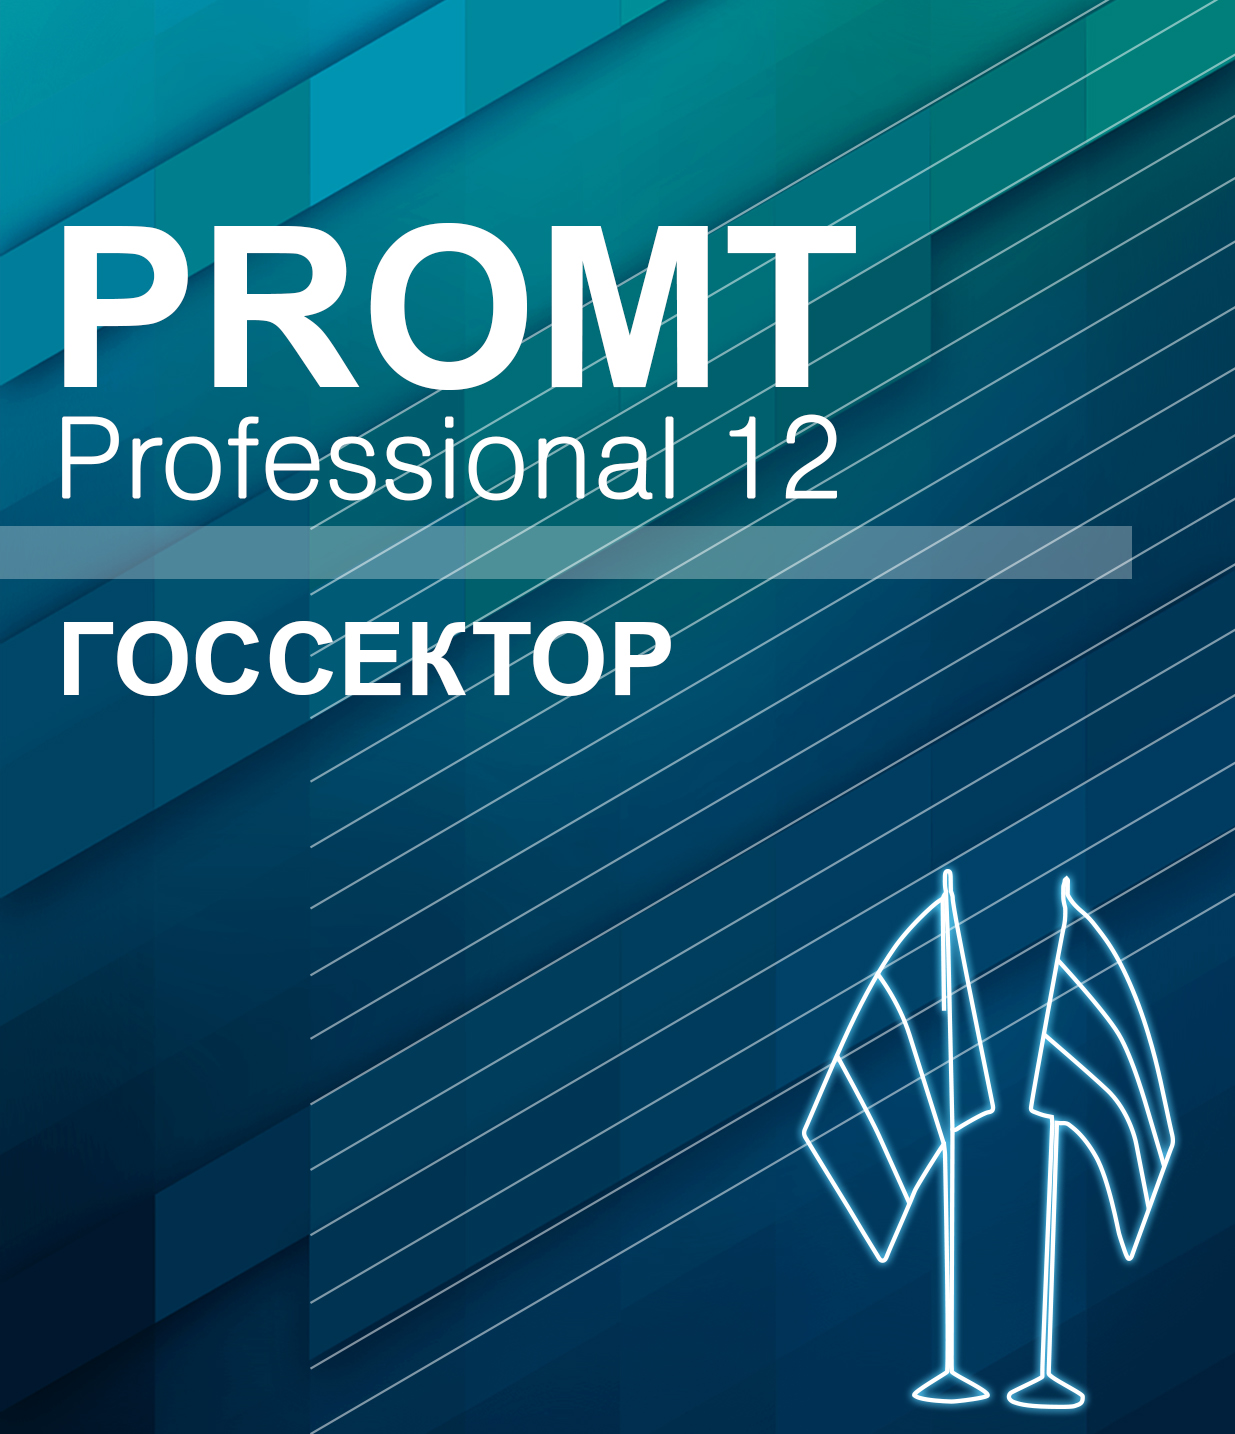 PROMT Professional Multilingual 12, Public Sector